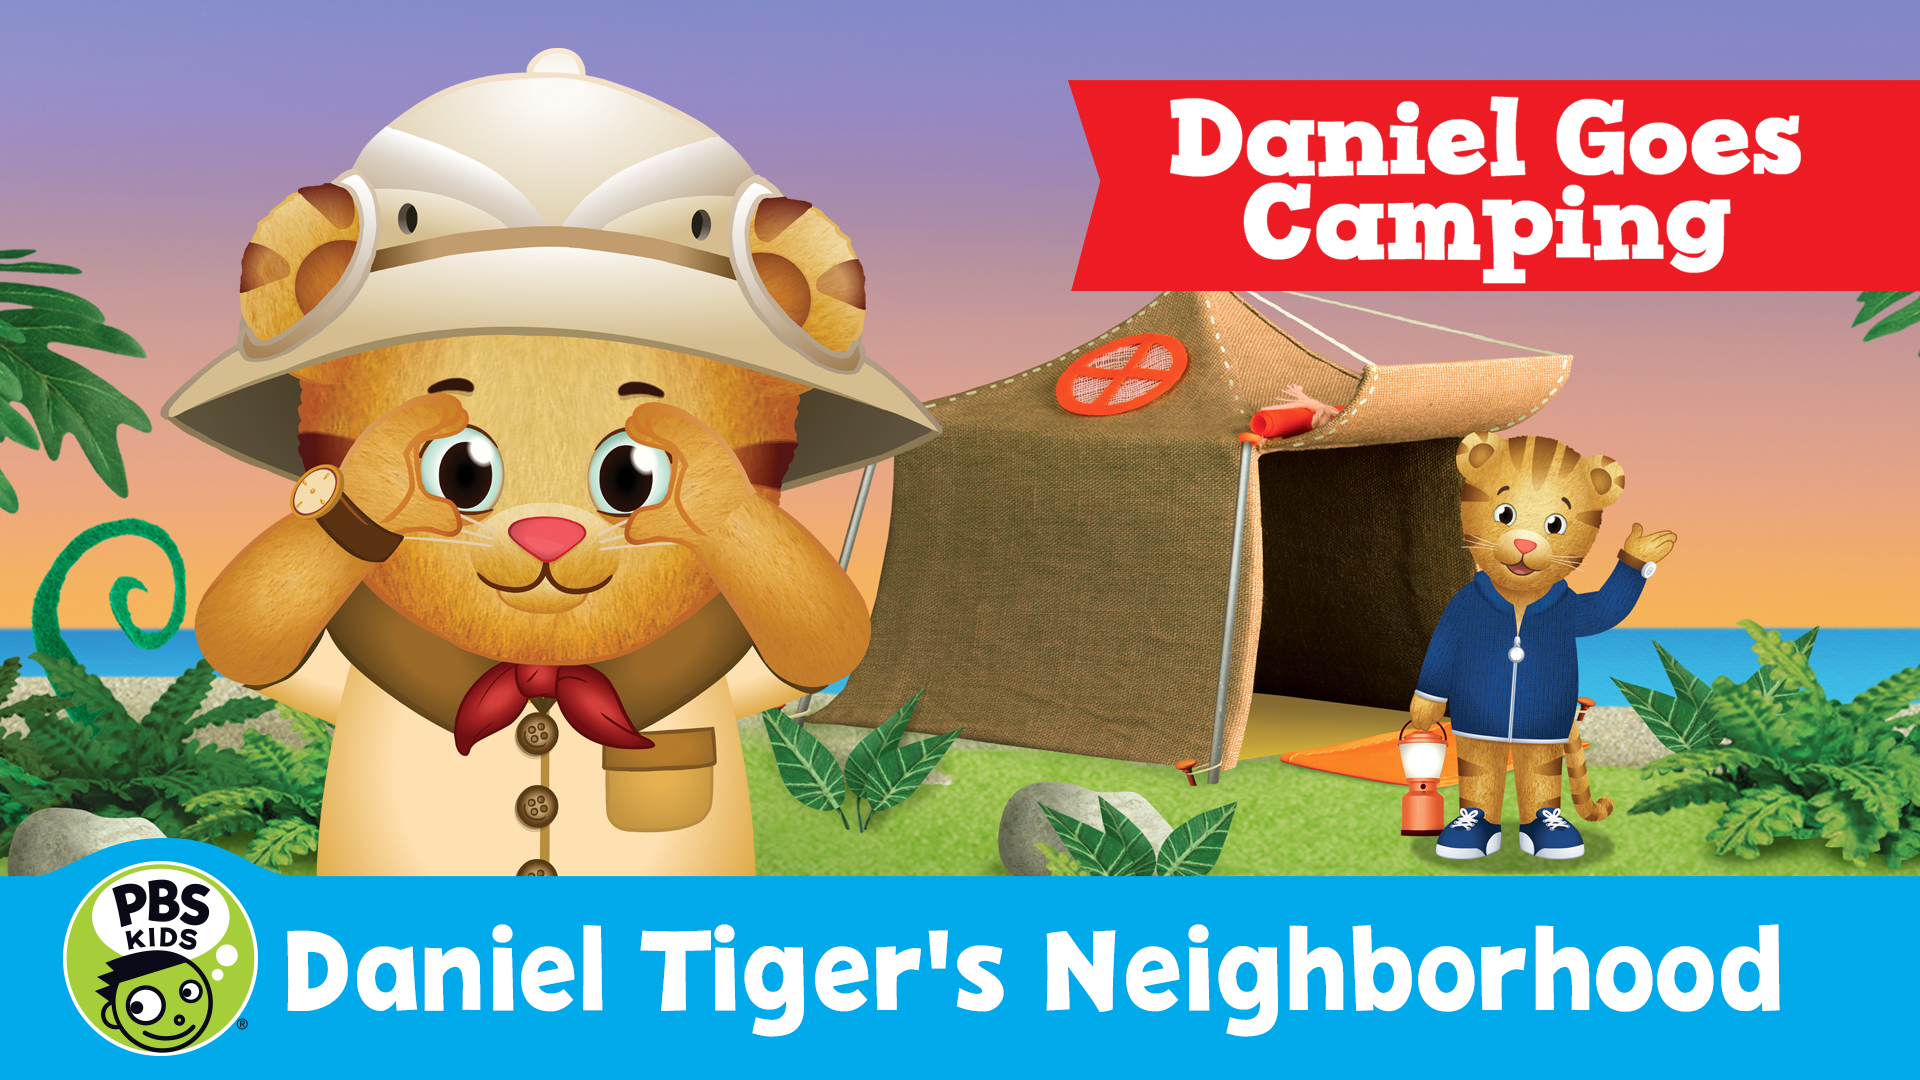 Daniel Tiger's Neighborhood: Daniel Goes Camping